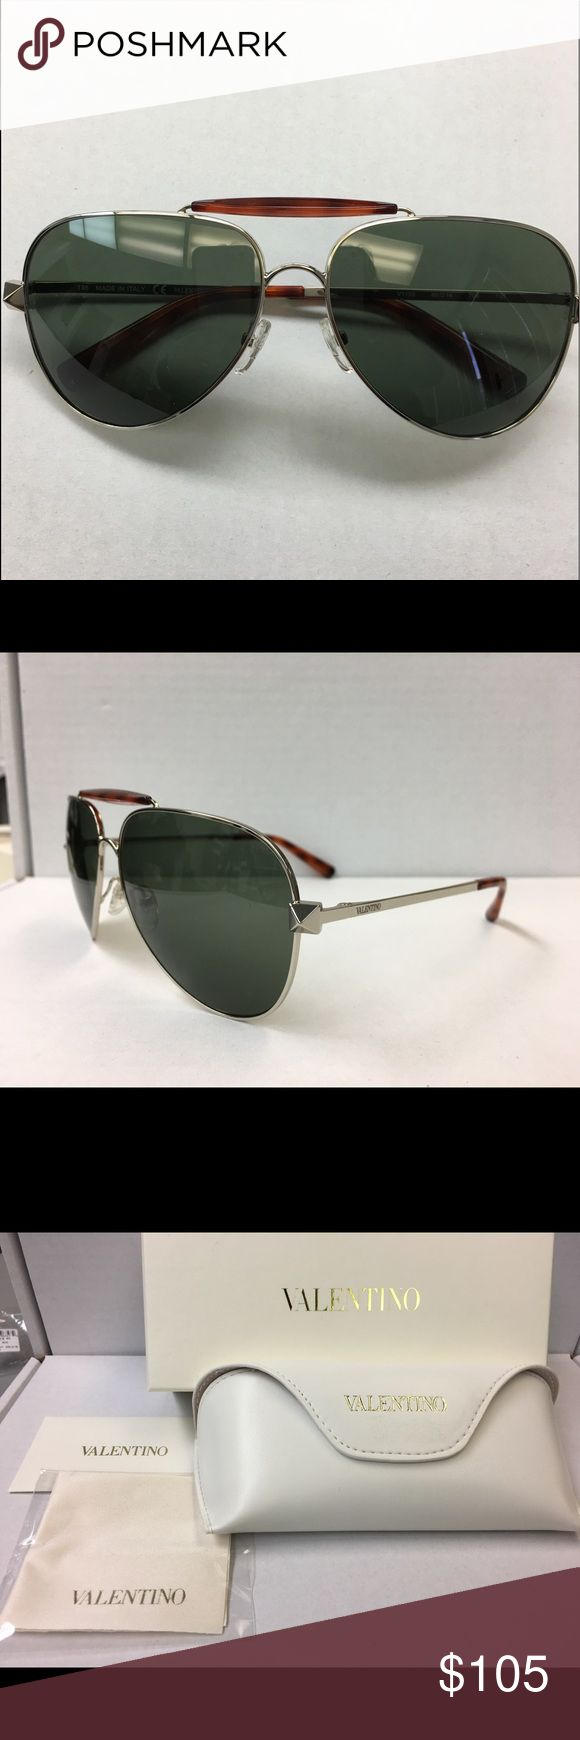 NWT Authentic Valentino Aviator Sunglasses TREAT YO SELF👑  Brand New!! Stunning Authentic Valentino Women's Sunglasses  Model: V115s Color: 708 Light Gold, Blonde Havana Style: Aviator  Includes: Valentino Case (Box not included)  Microfiber Cleaning Cloth Valentino Certificate of Authenticity   The PERFECT present for anyone!!  Retails for over $360 ~ *Price Firm* 🚫TRADES Valentino Accessories Sunglasses